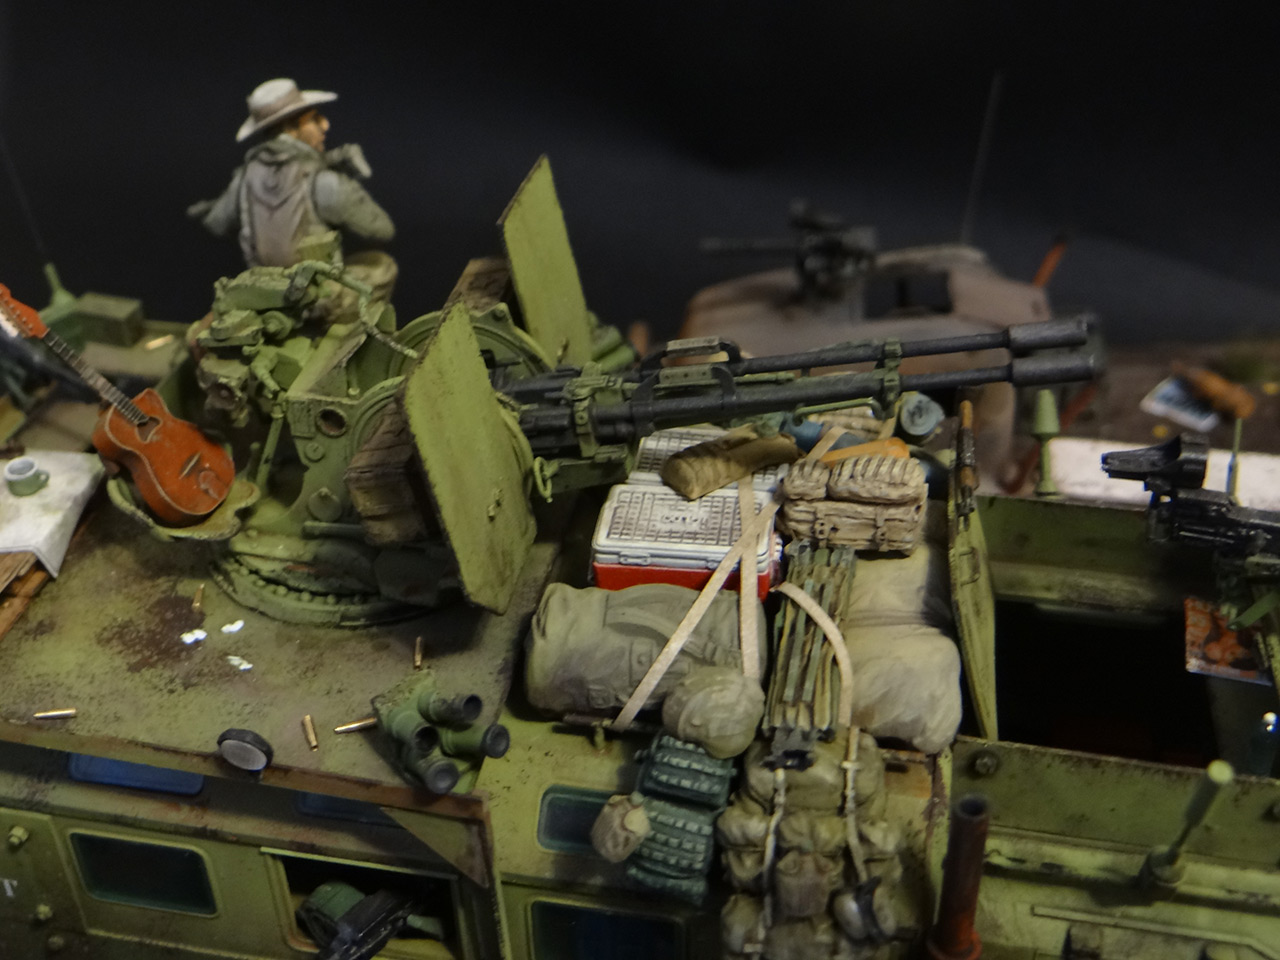 Dioramas and Vignettes: Road Warriors, photo #11